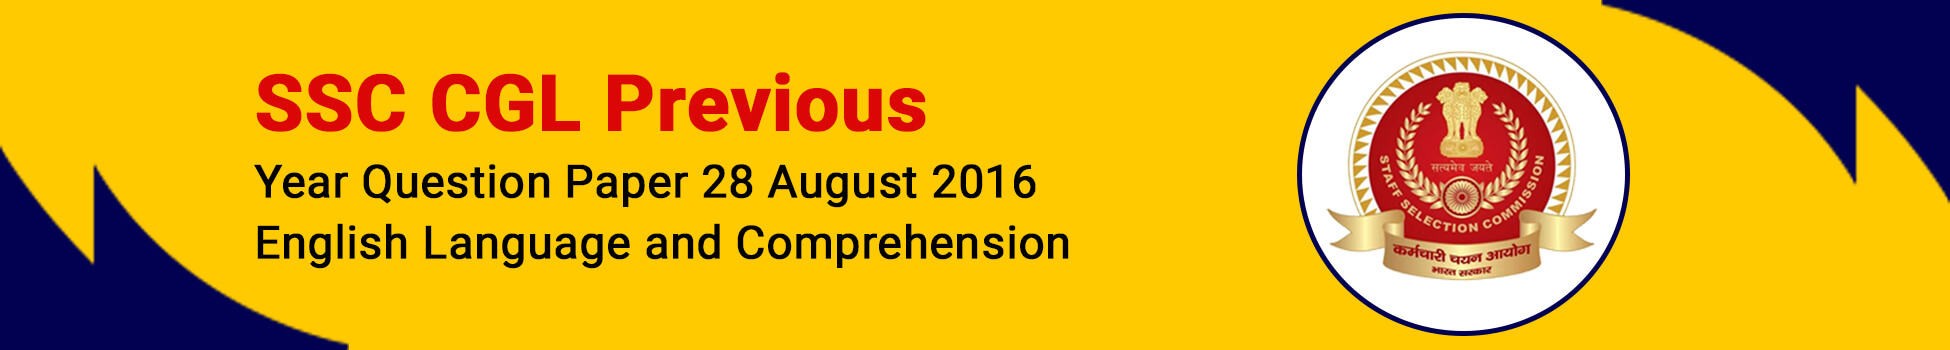 SSC CGL Previous Year Question Paper 28 August 2016 -   English Language and Comprehension